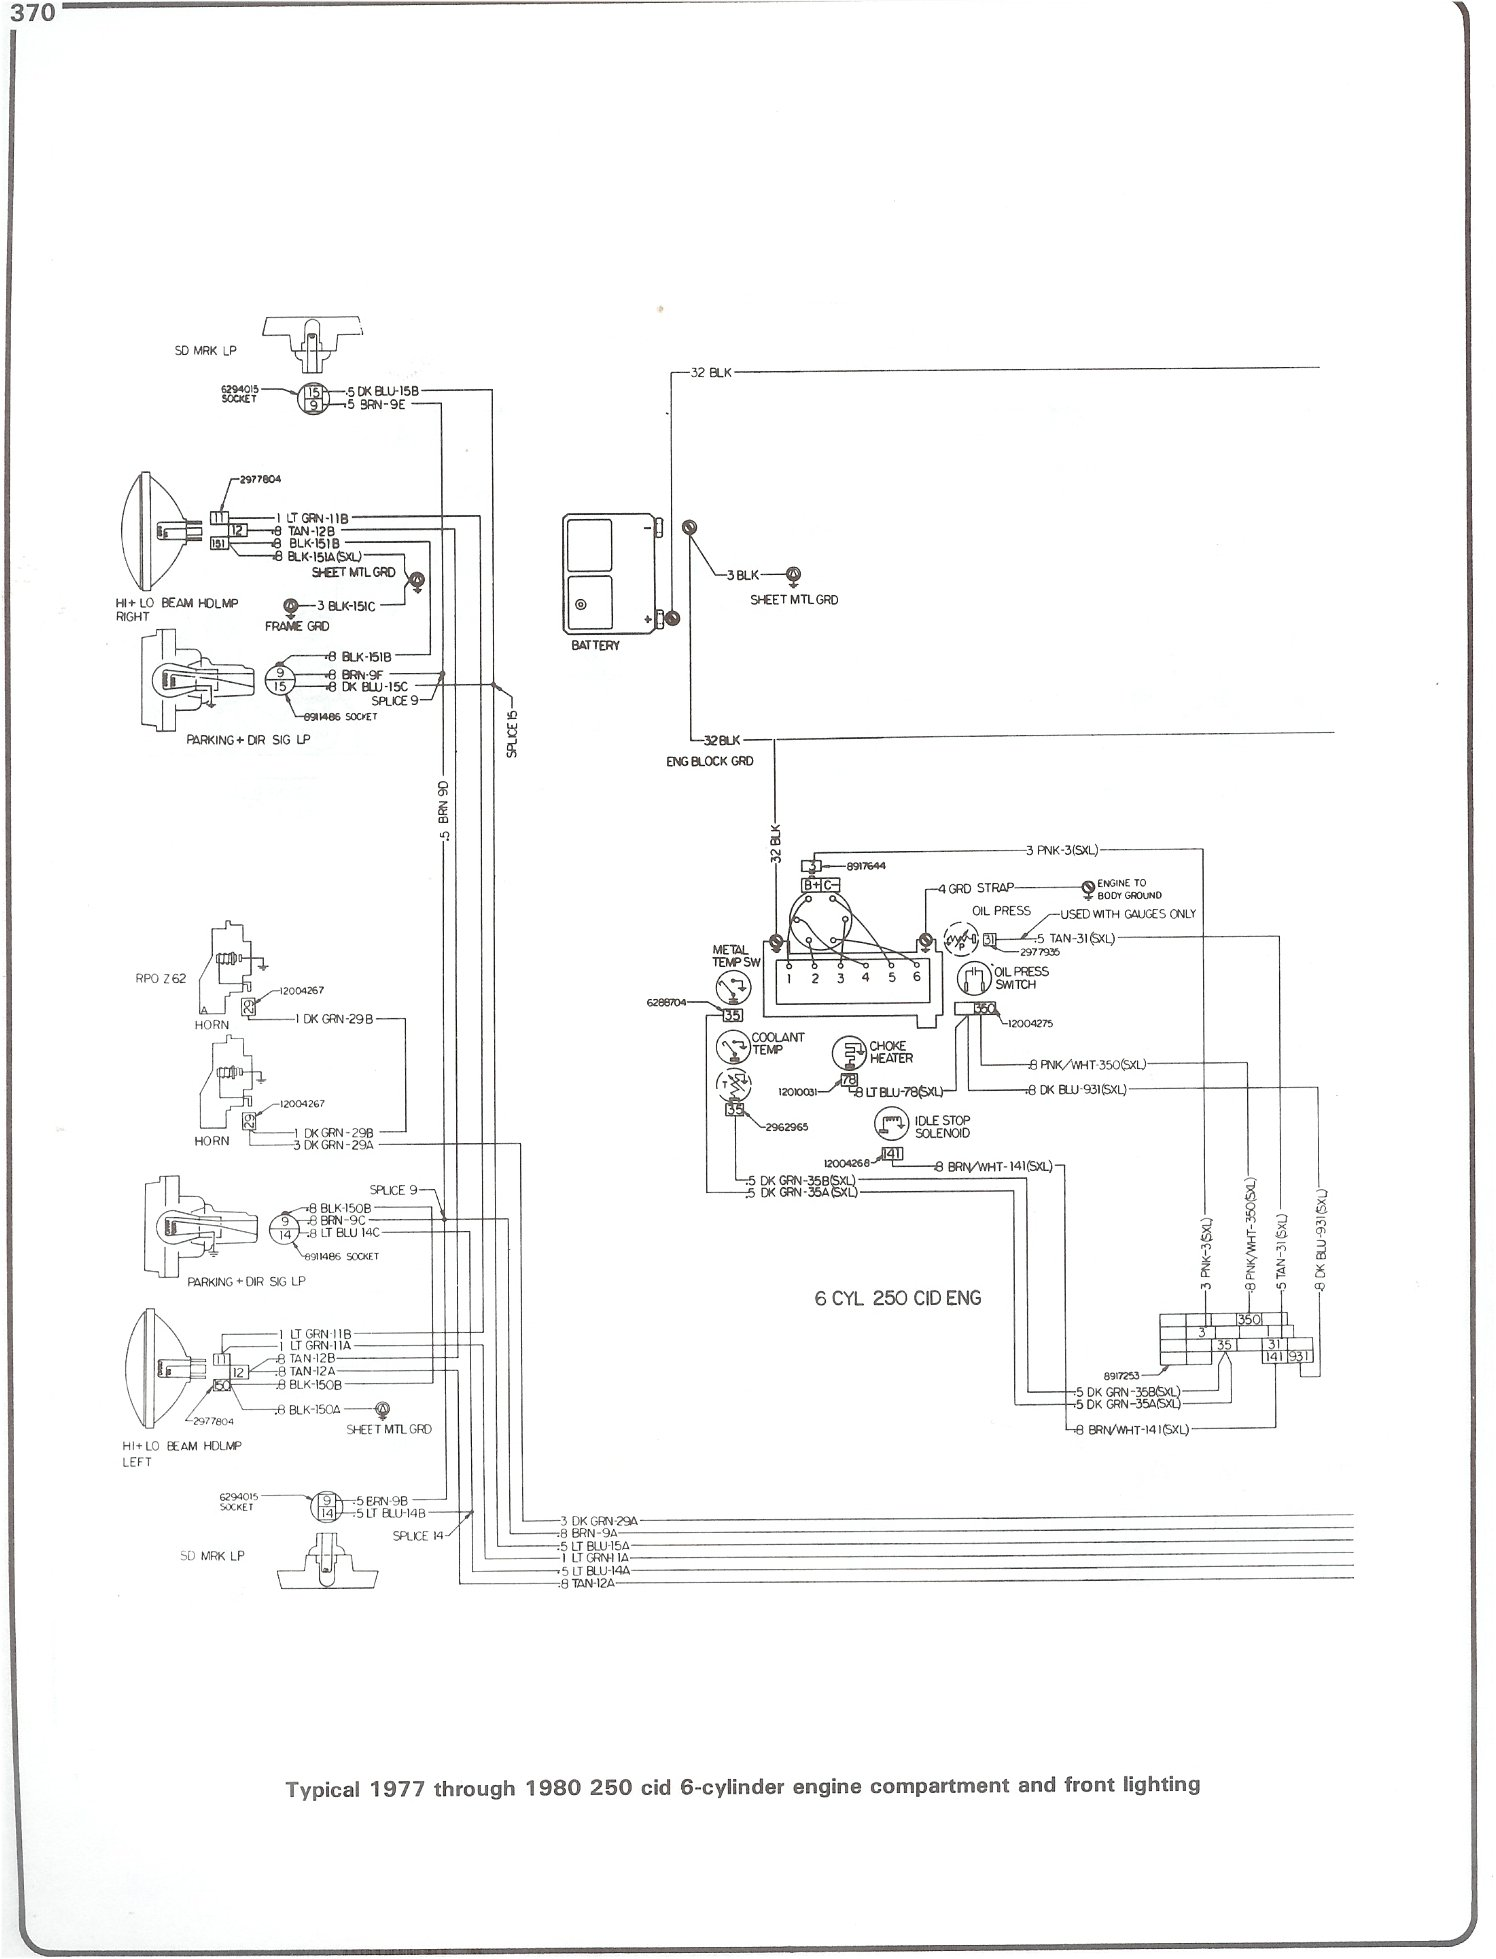 1999 Suburban Engine Diagram Wiring Library For Chevy Complete 73 87 Diagrams Radio 77 80 250 I6